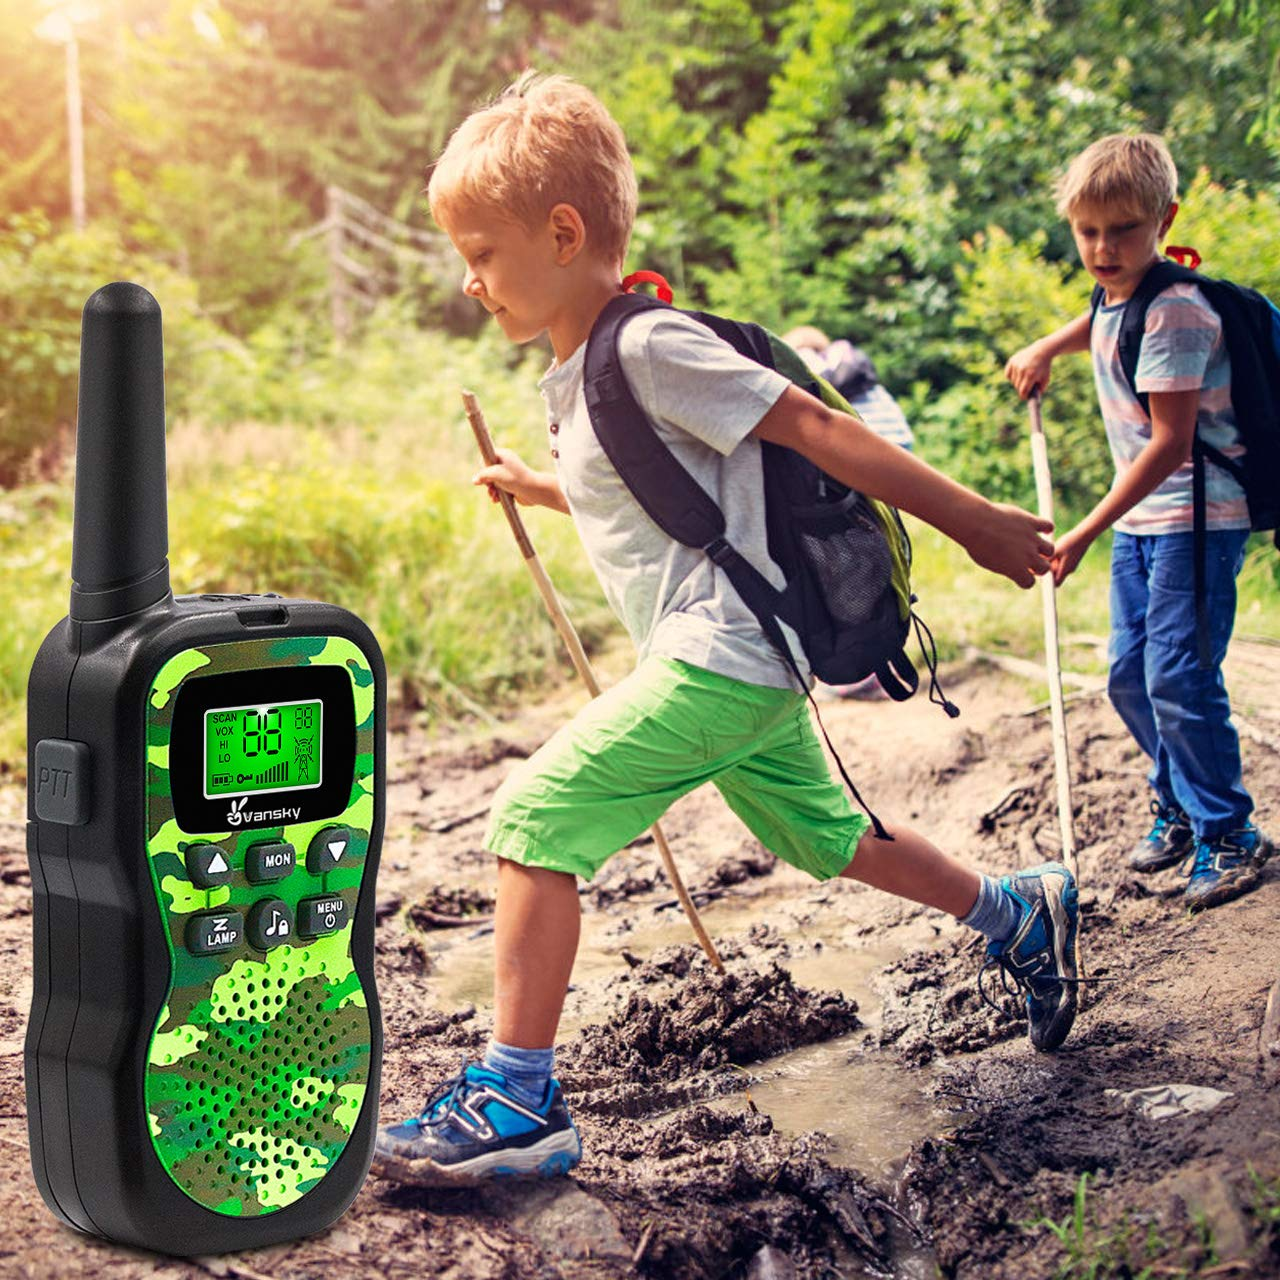 Vansky Walkie Talkies for Kids, Kids Toys 4 5 6 7 8 Age Boy Girl Long Range 22 Channel Built-in Flashlight 2 Way Radio Best Gifts Games, Outdoor Adventure, Camping, Hiking (Camo Green) by Vansky (Image #3)